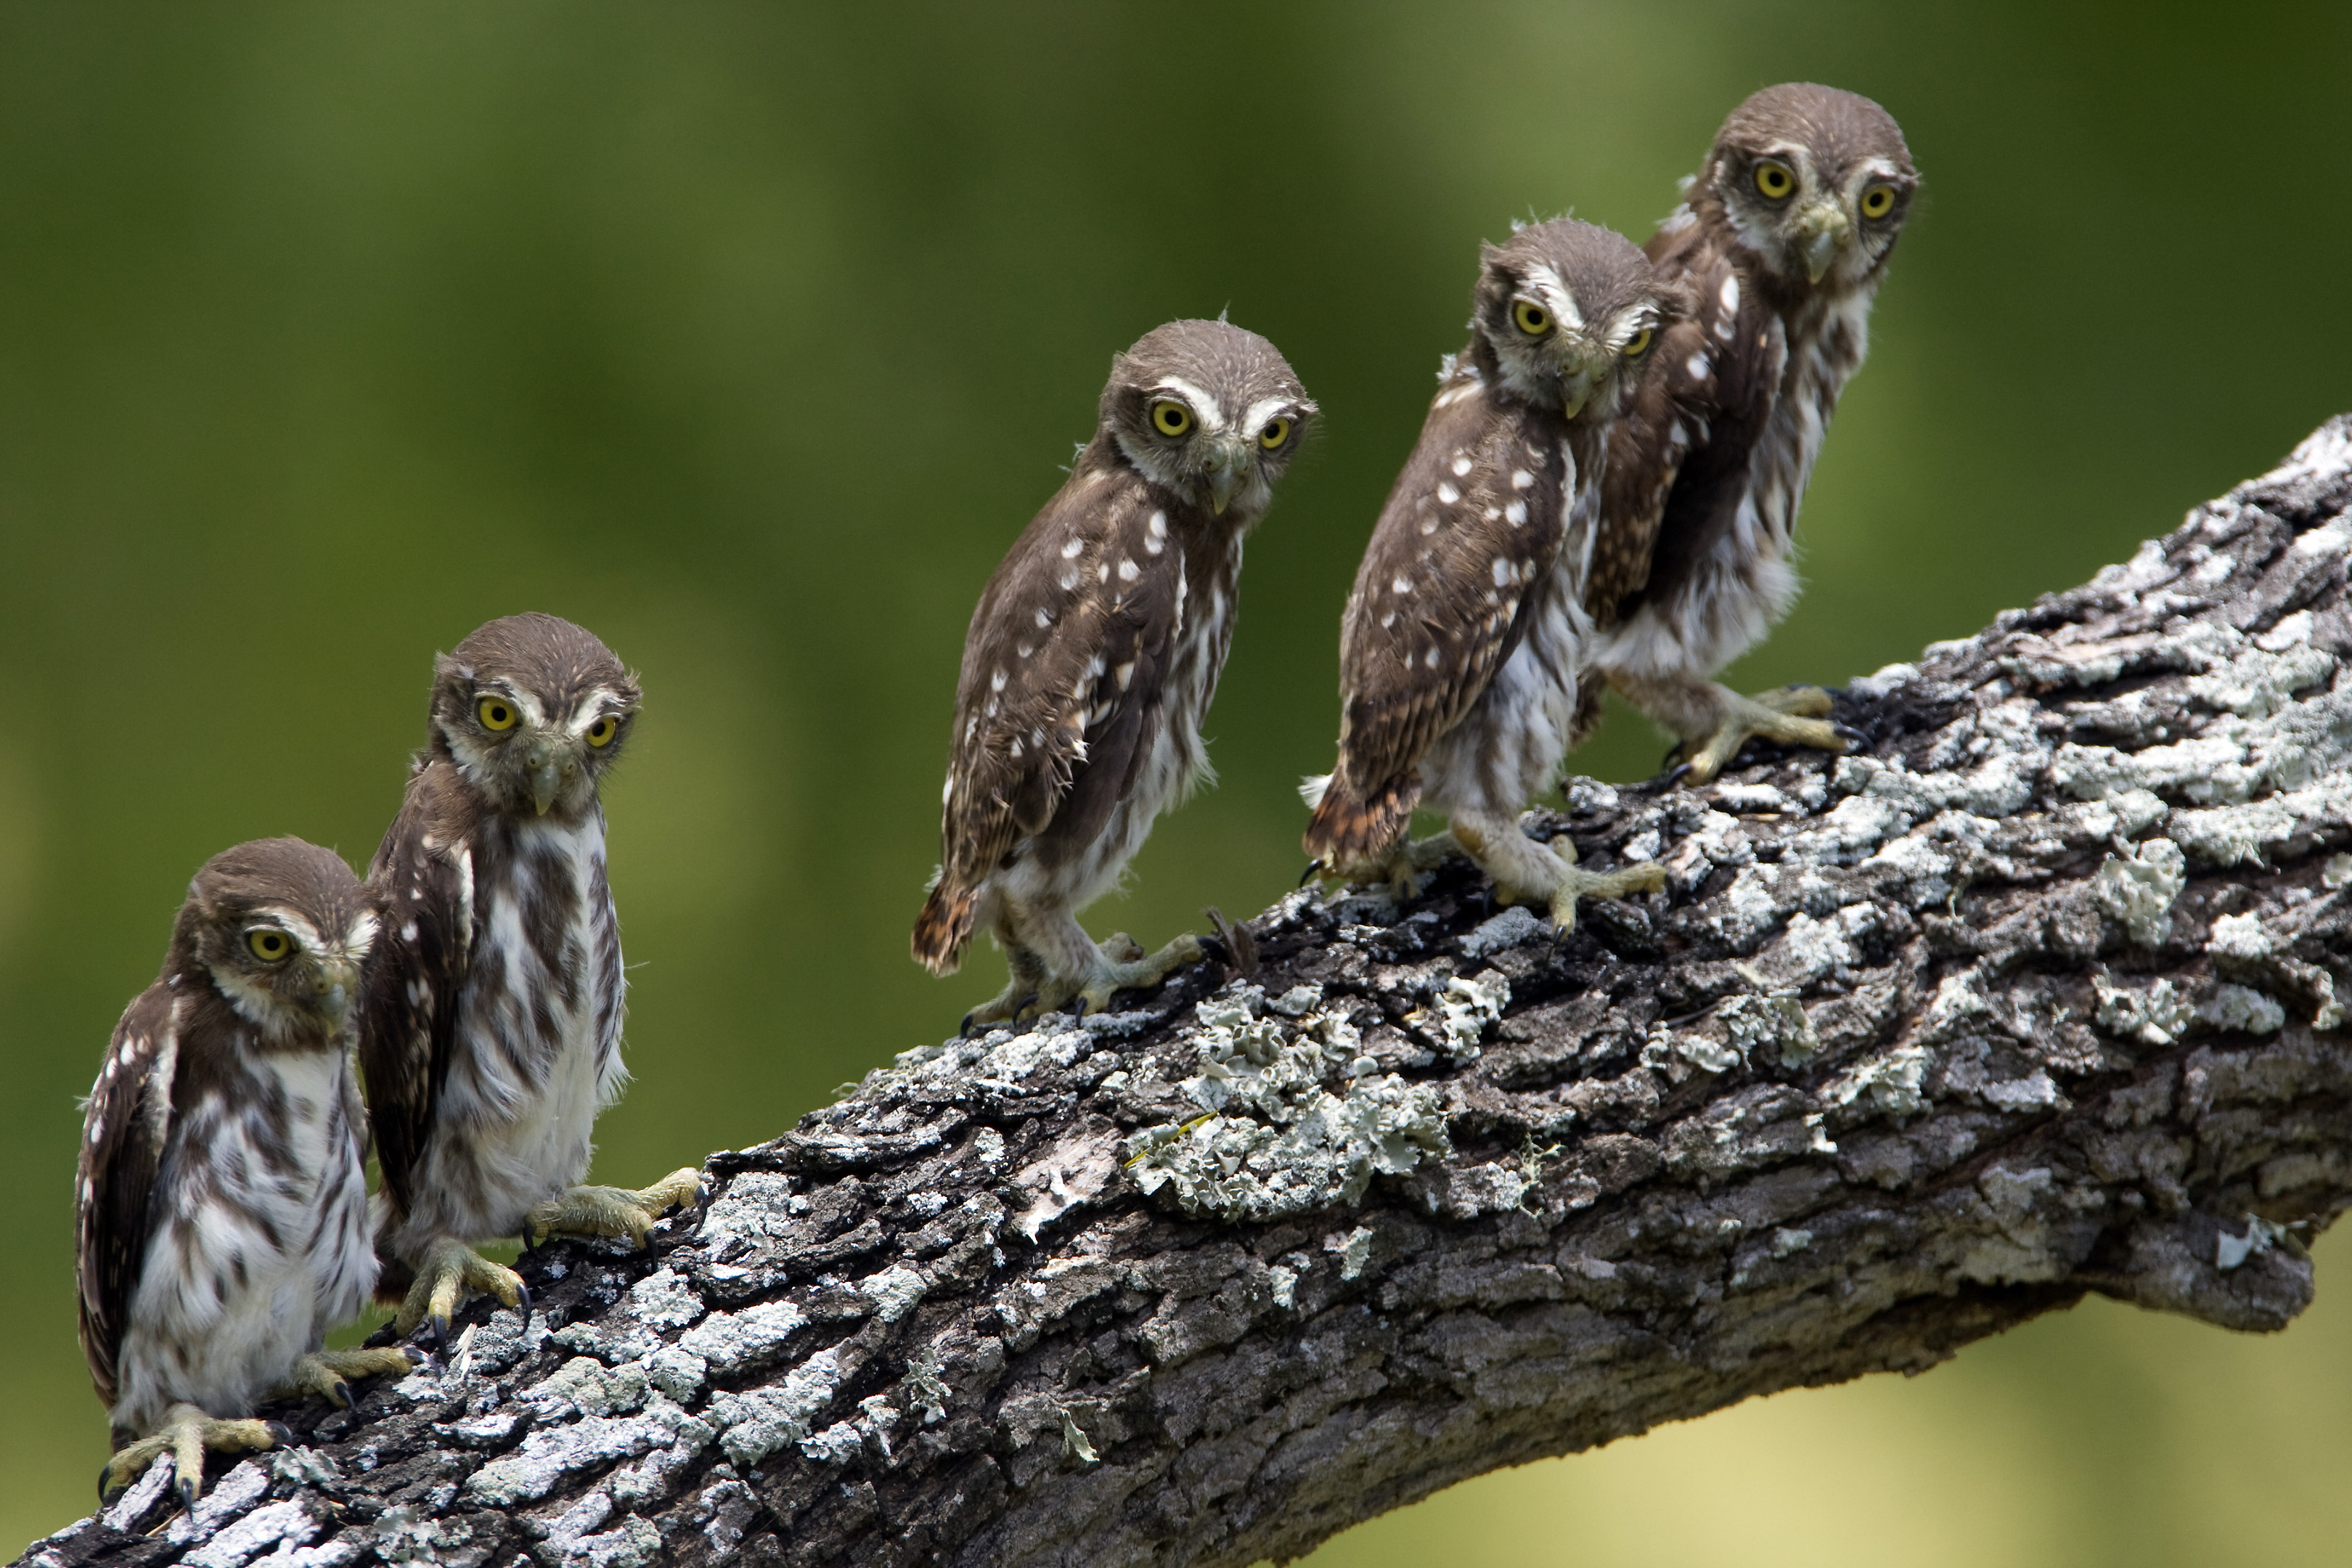 Ferruginous Pygmy-Owl chicks await their return to the nest box after being banded and weighed as part of a long-term research project.